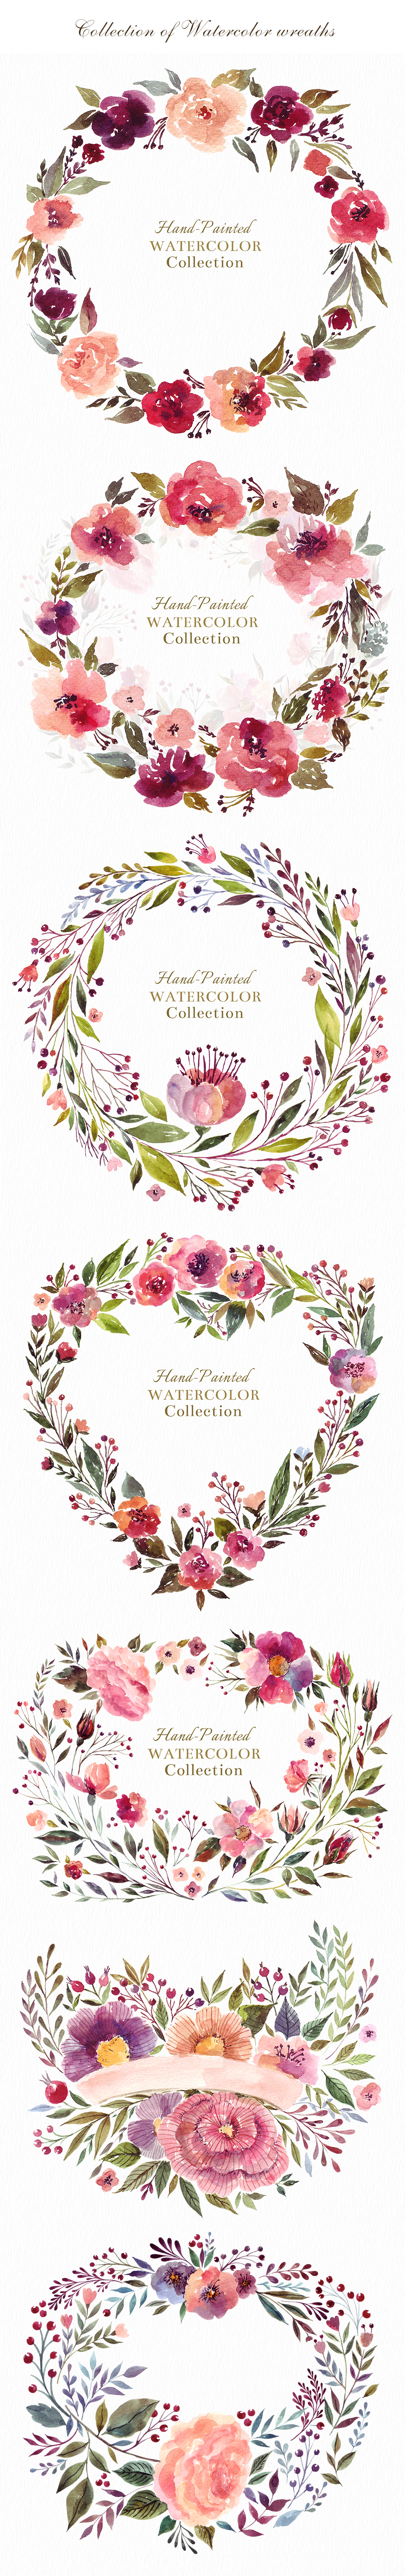 230 Watercolor graphic elements example image 6